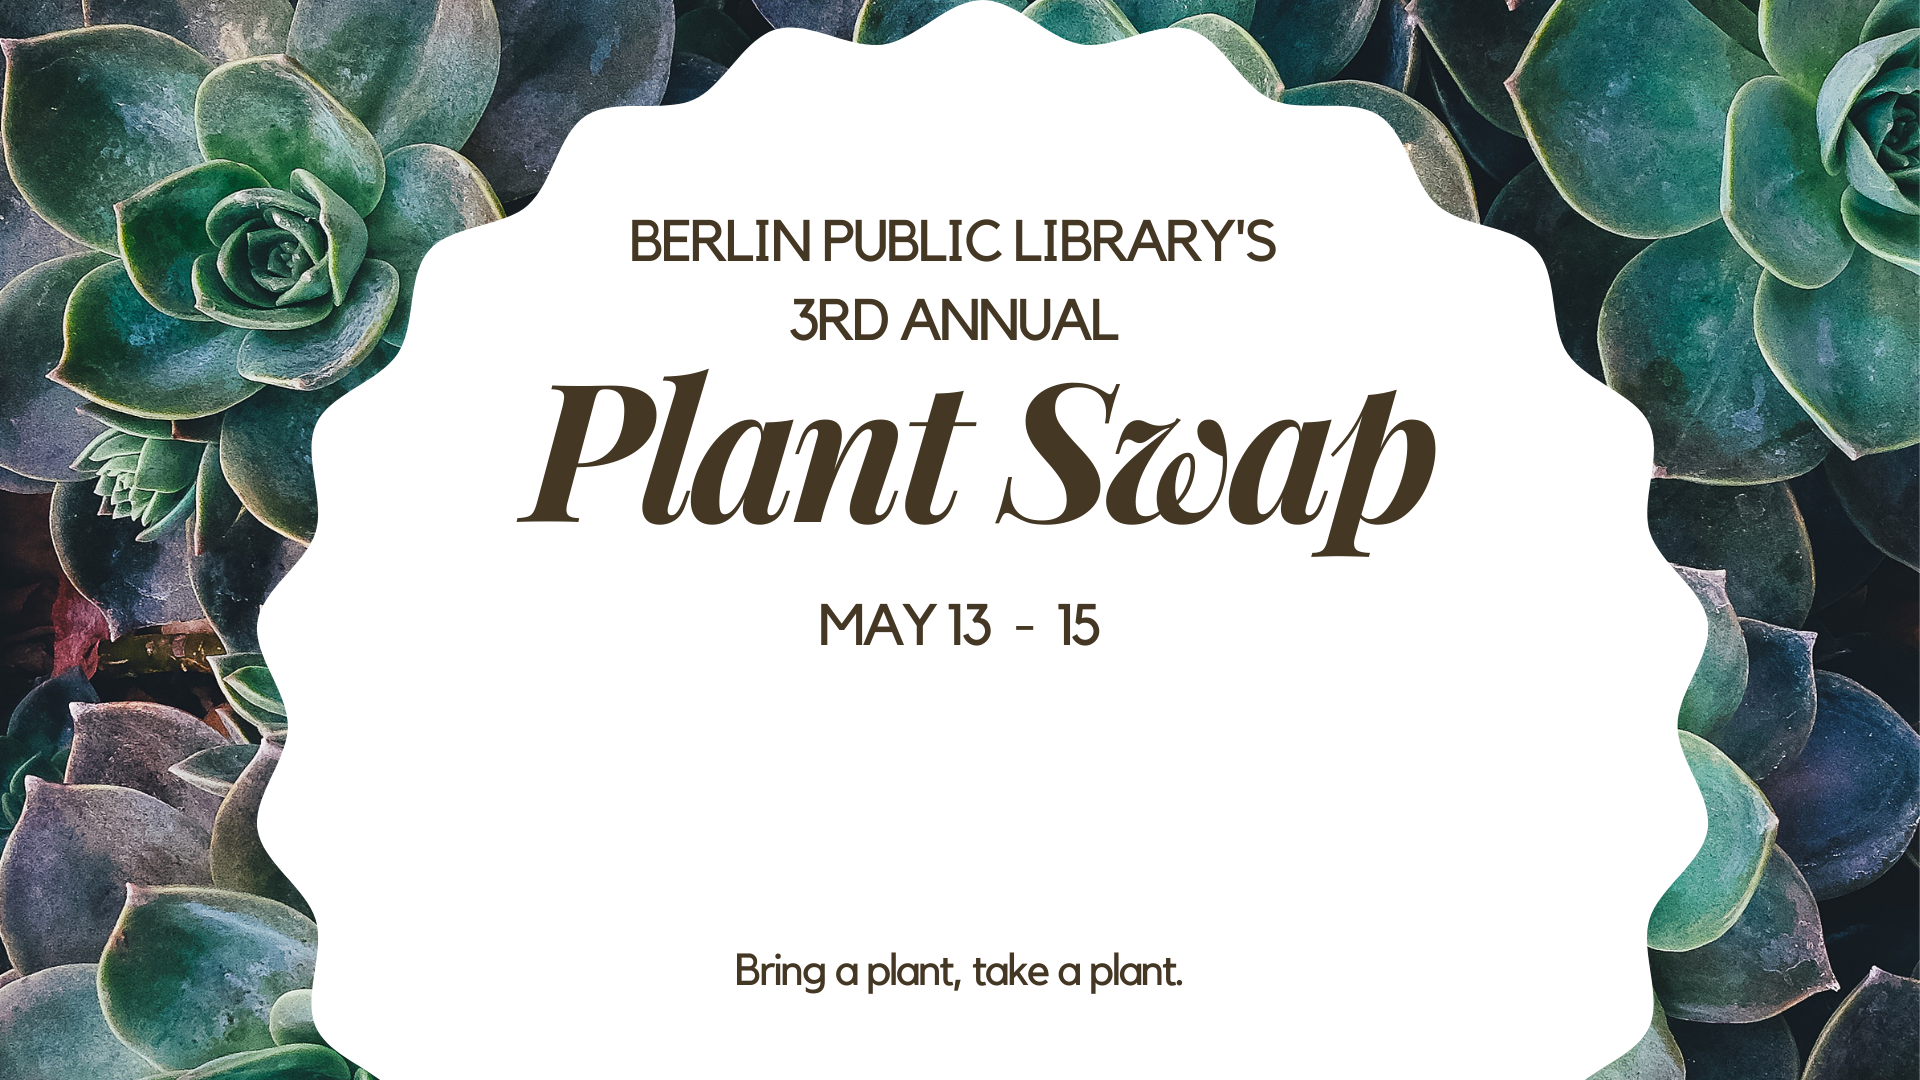 Berlin Public Library's 3rd Annual Plant Swap. May 13-15. Bring a plant, take a plant.